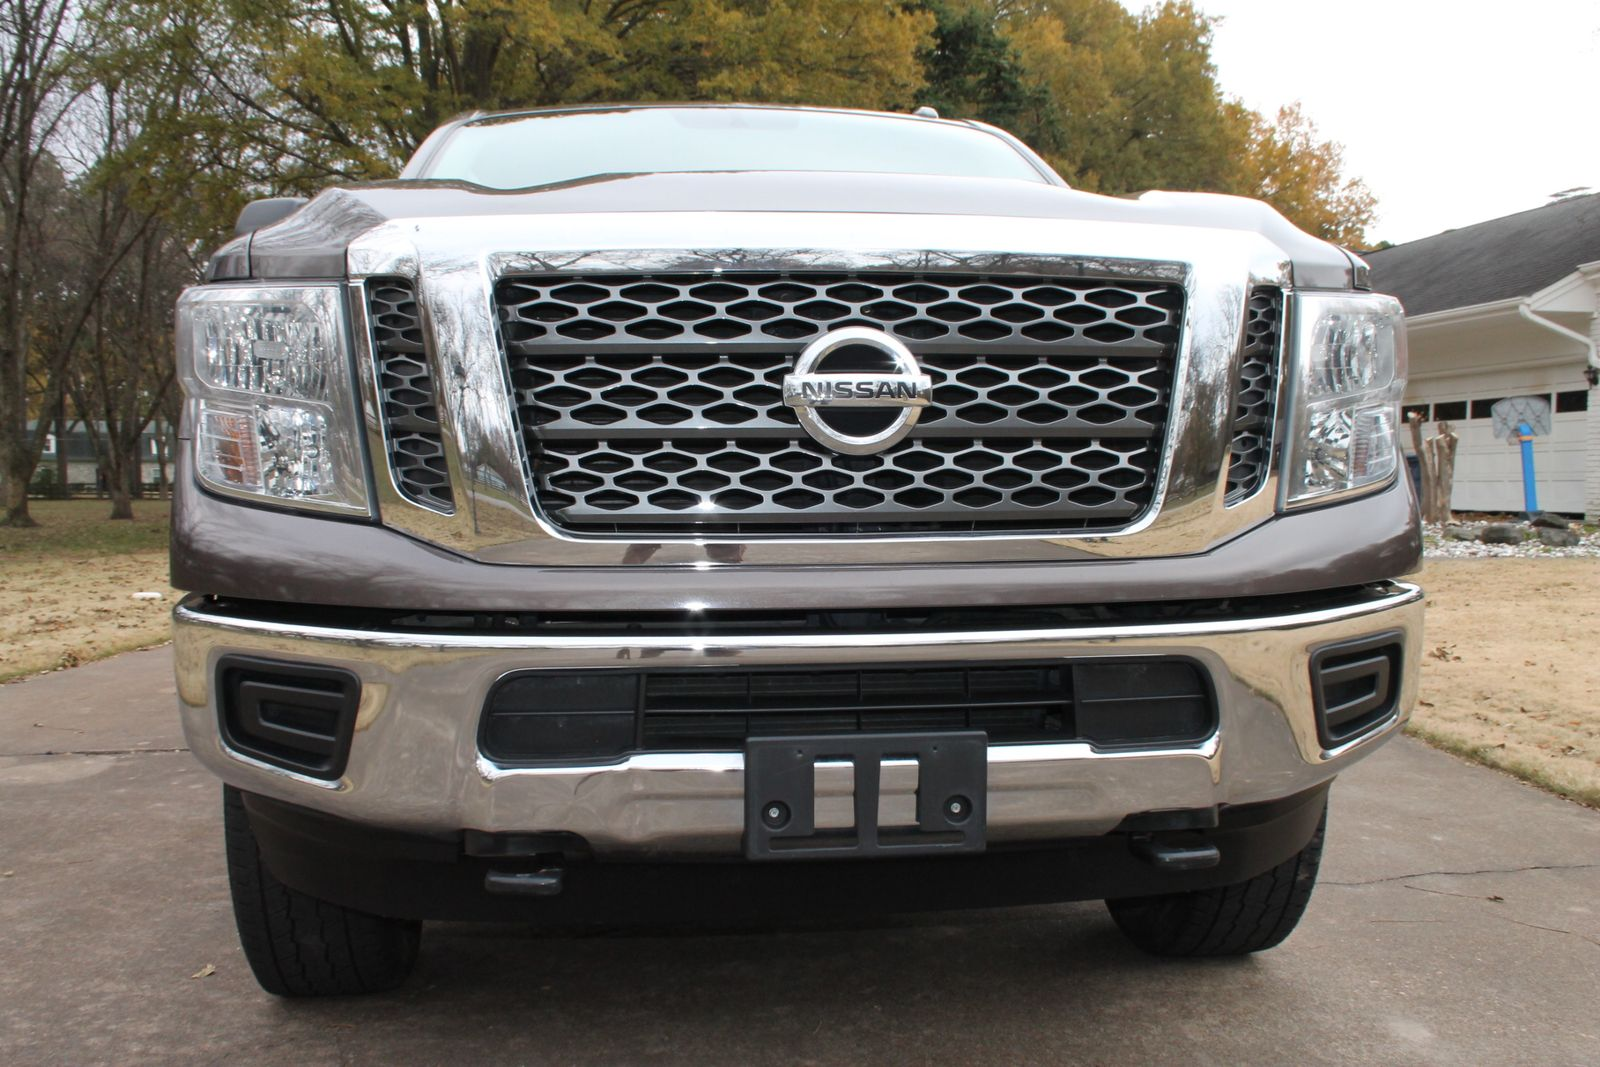 2016 nissan titan xd sv cummins diesel price used cars. Black Bedroom Furniture Sets. Home Design Ideas